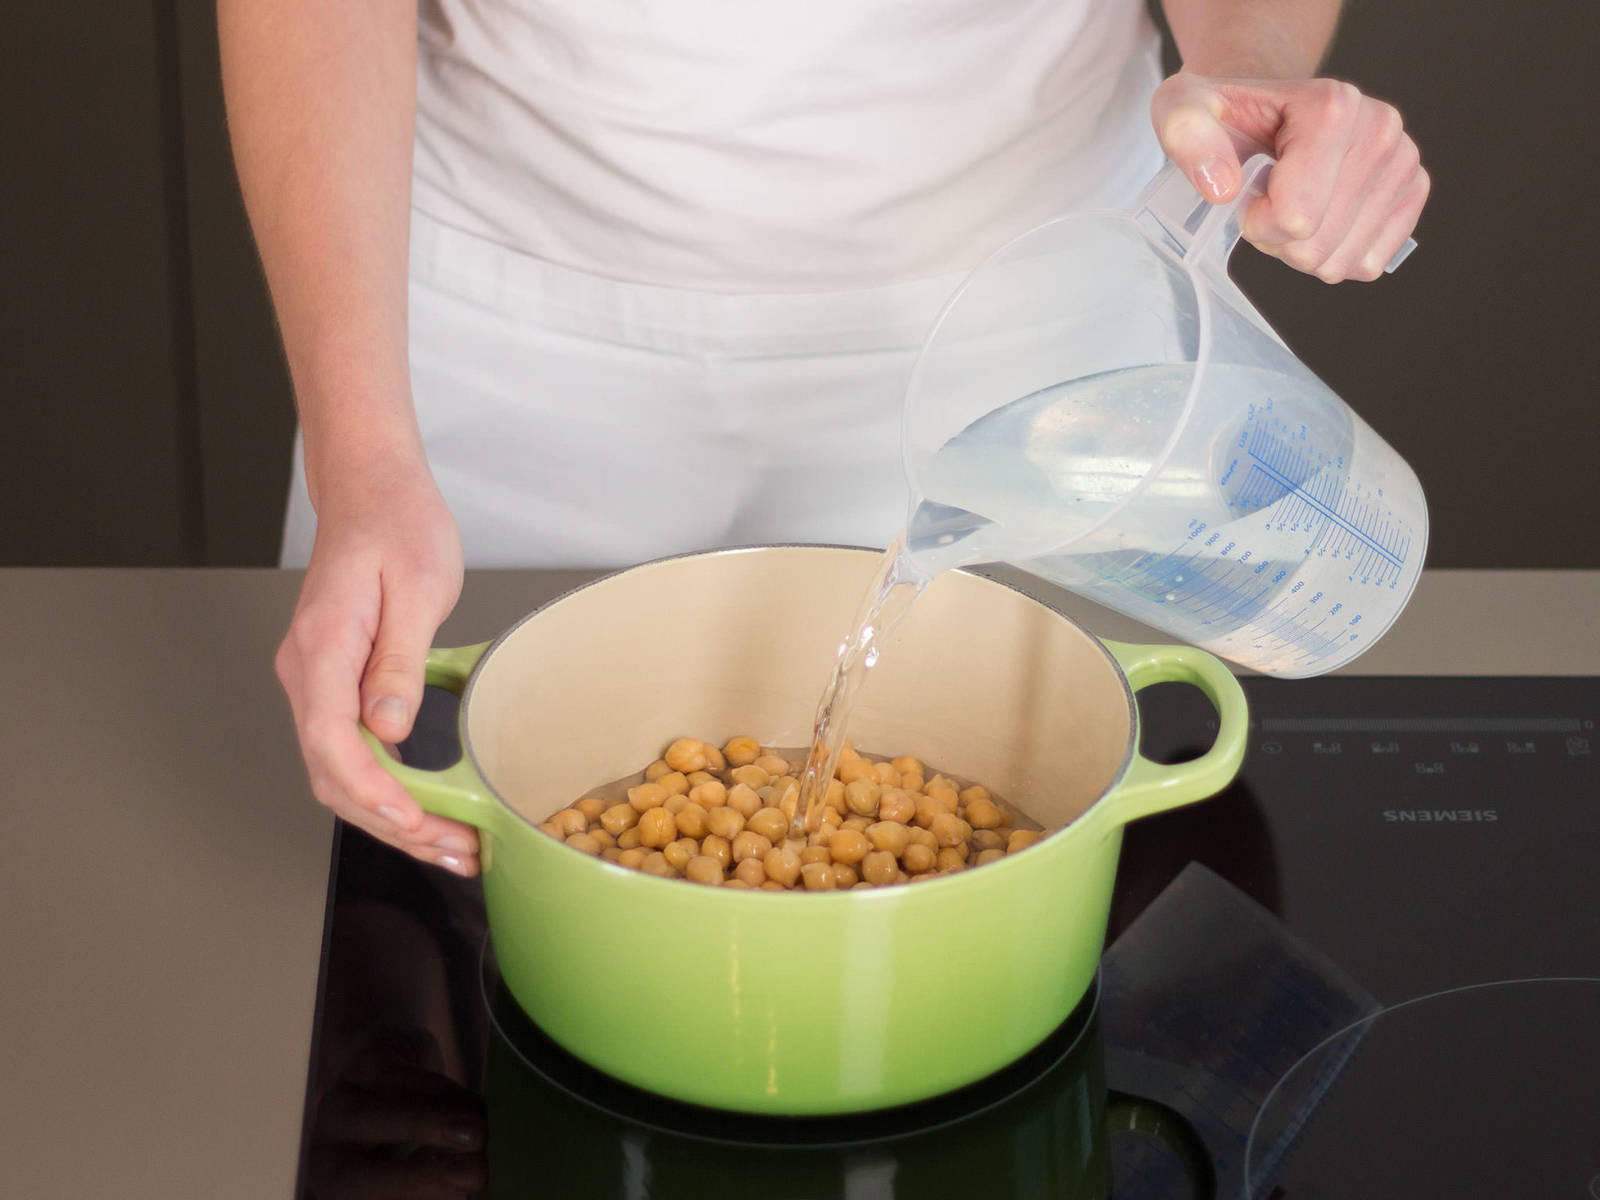 In a large saucepan, bring chickpeas and water to a boil and cook for approx. 5 – 10 min.